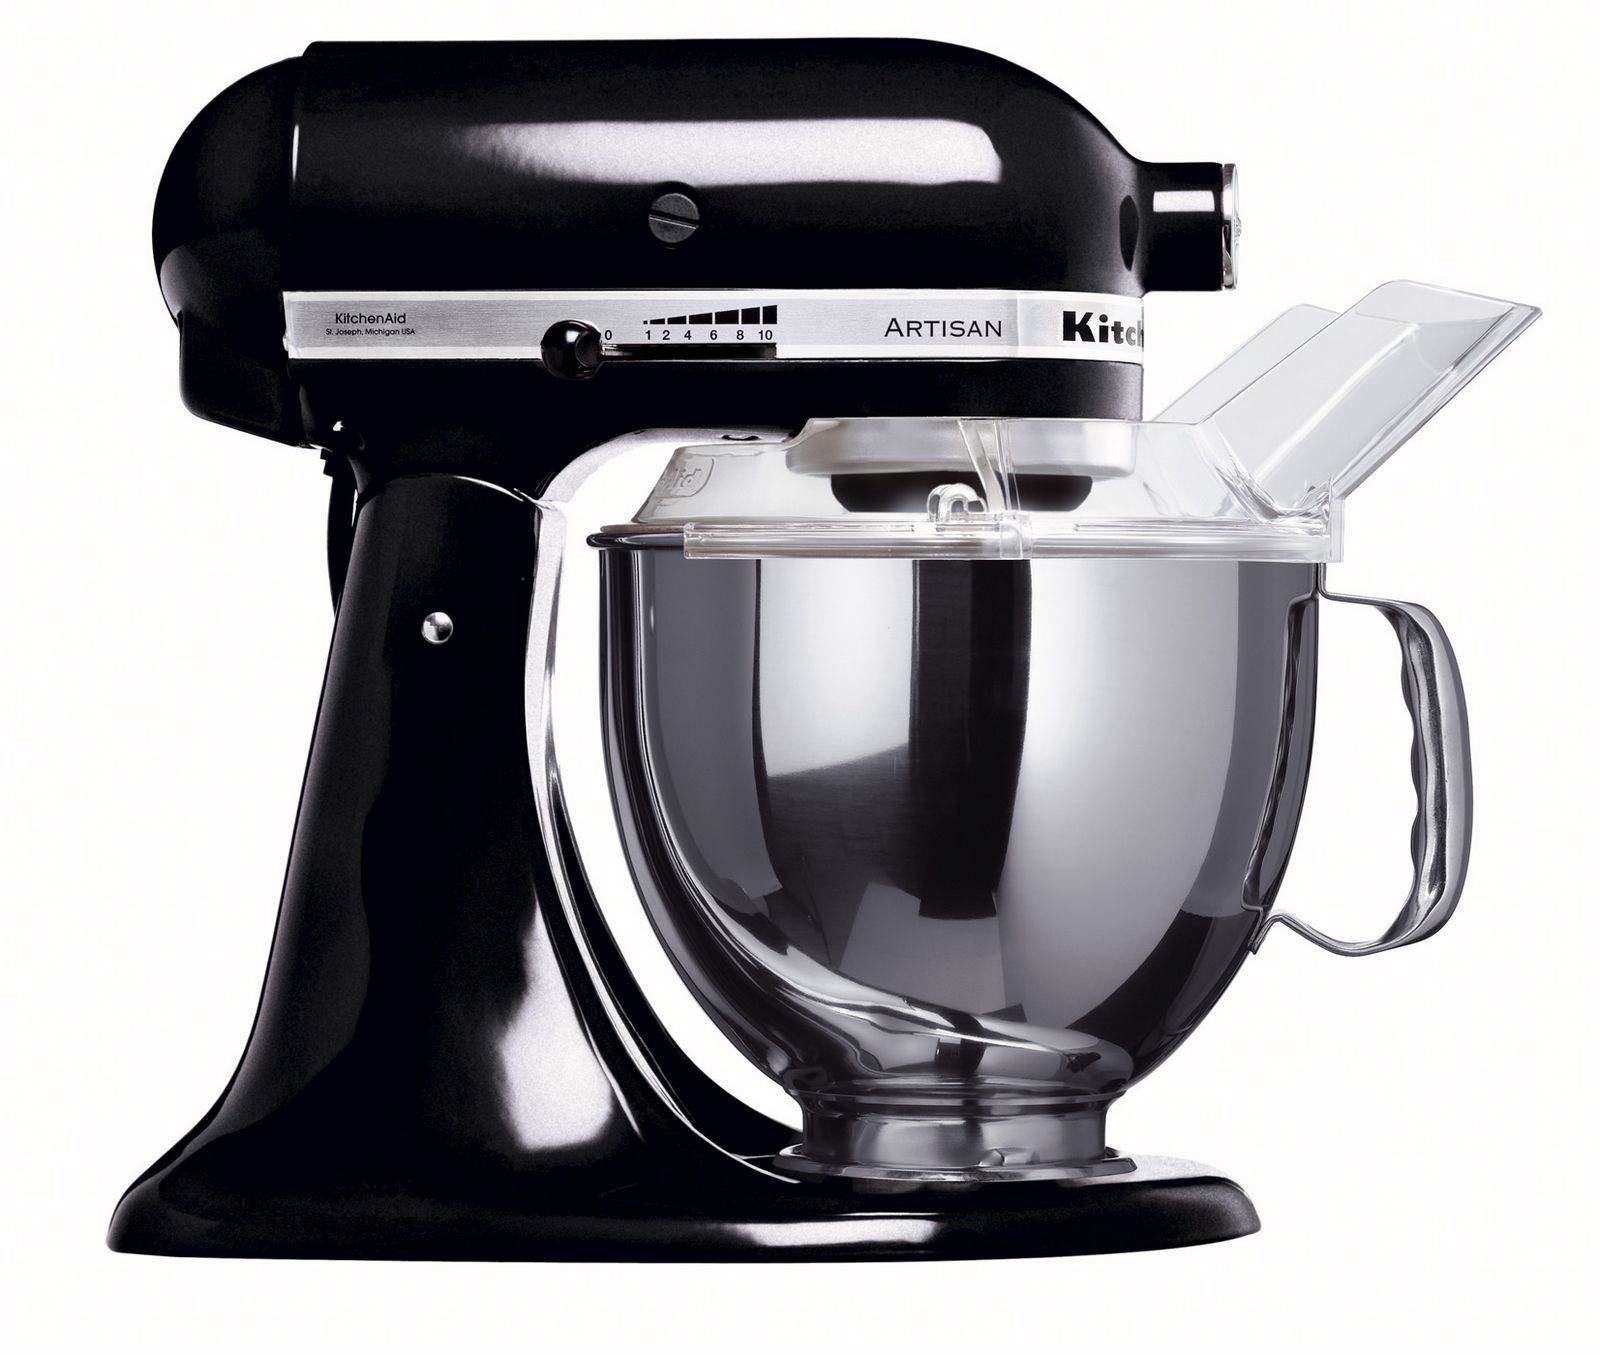 for mothers day kitchen aid mixer available at costco and